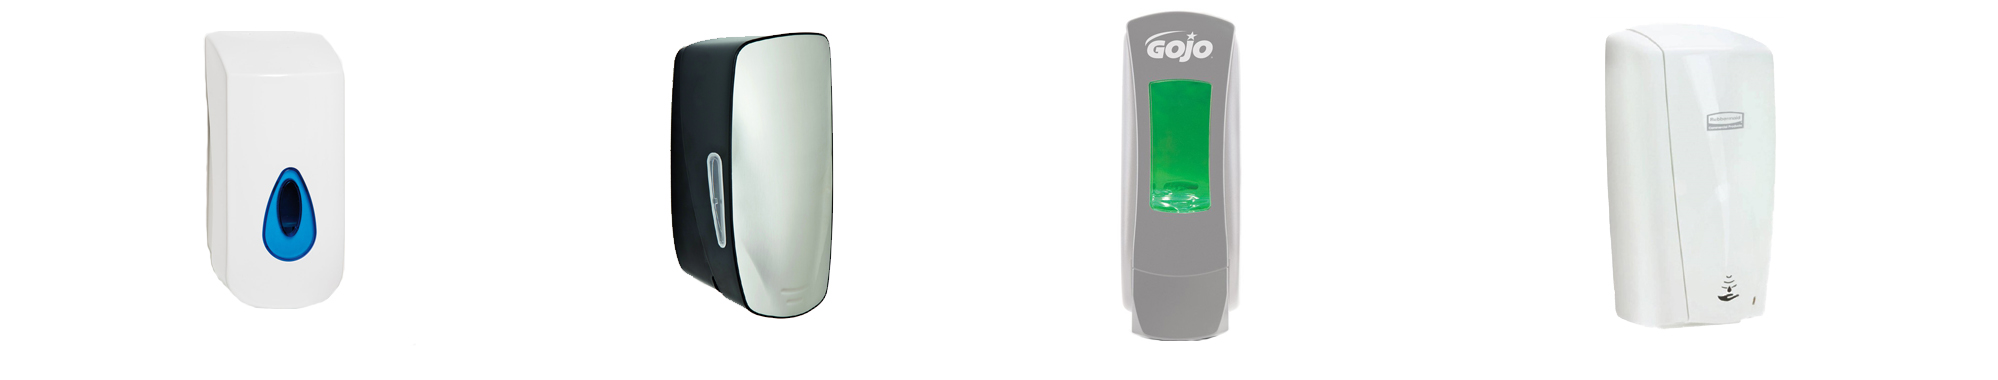 Soap dispensers available for service